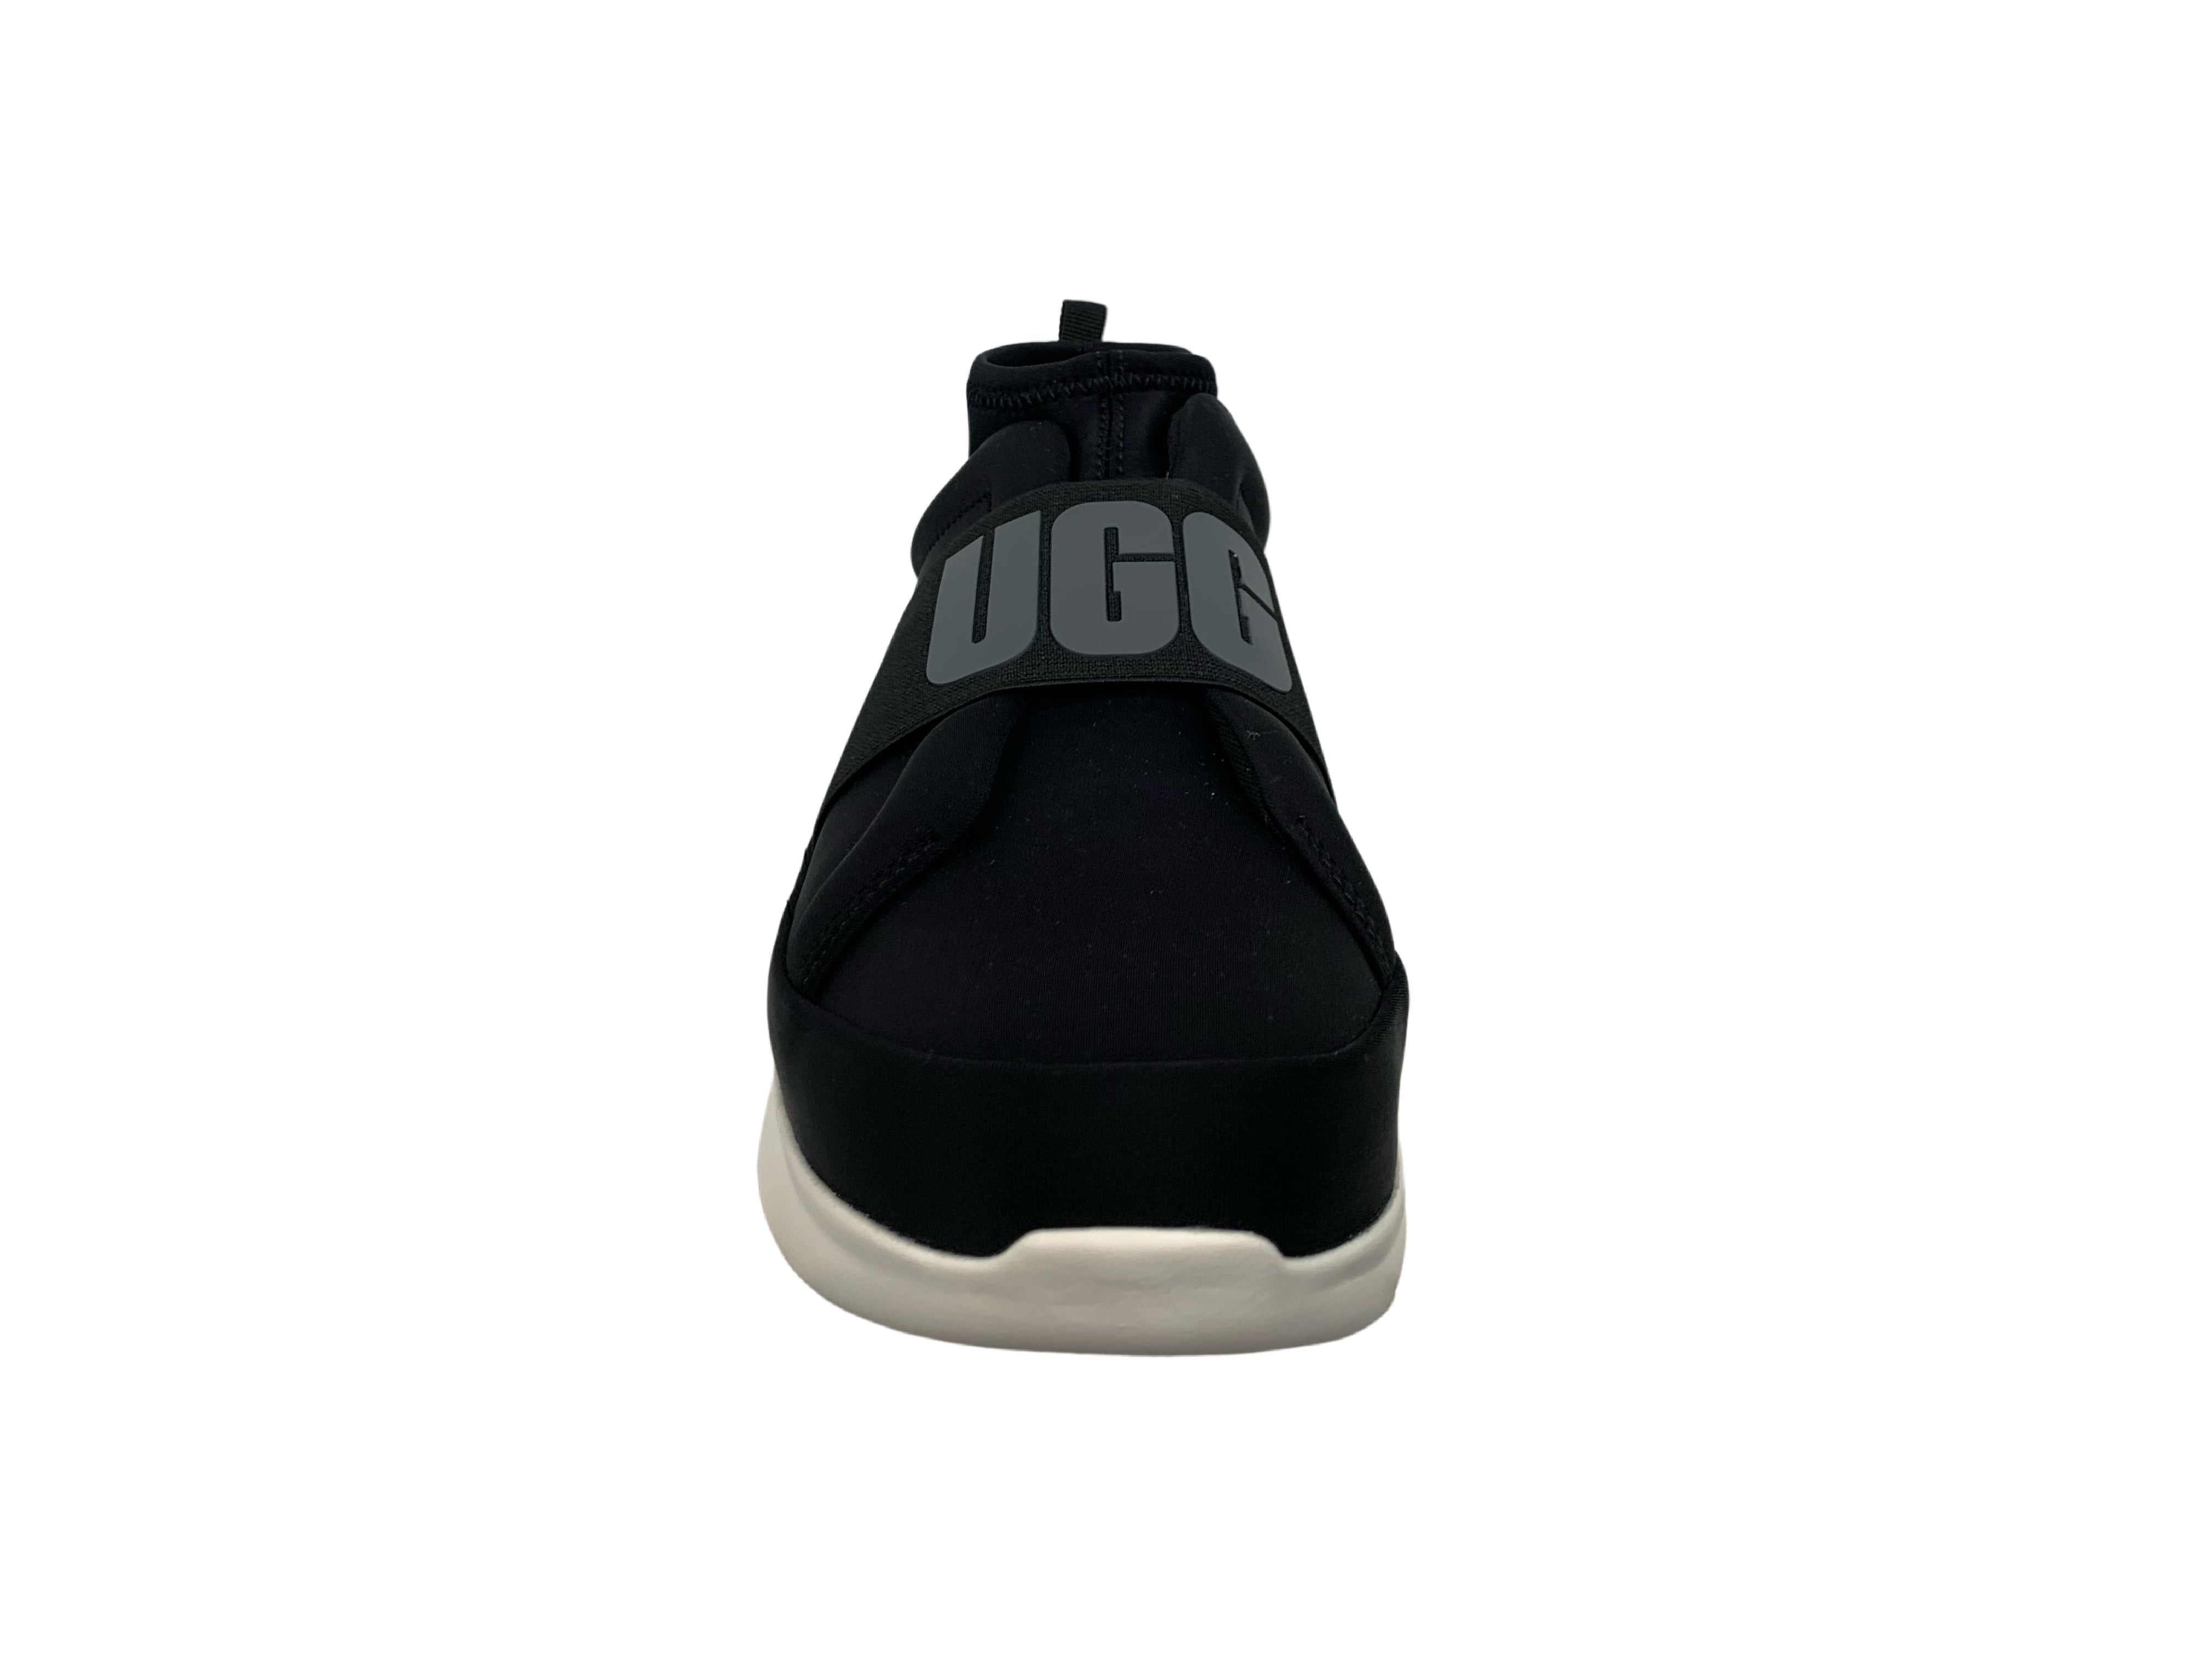 UGG Black Sneaker - Chic Thrills